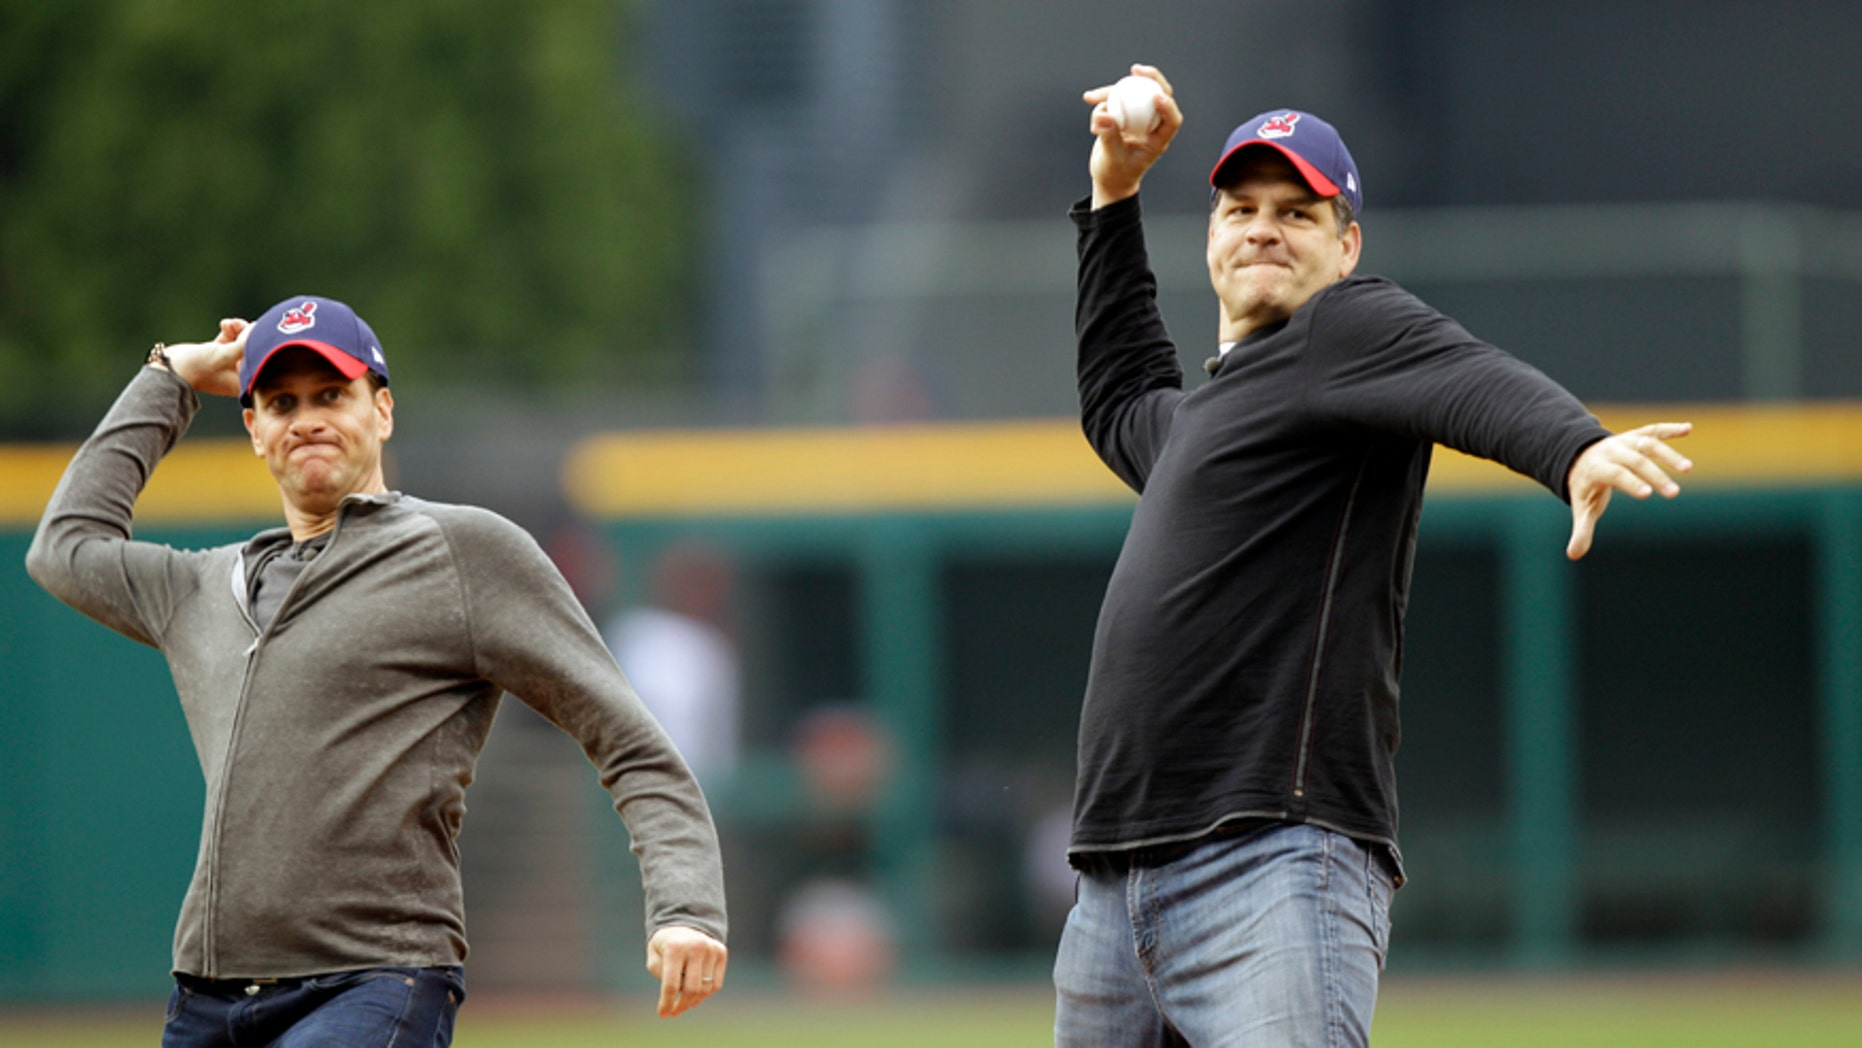 In this May 8, 2012, file photo, ESPN radio hosts Mike Greenberg, left, and Mike Golic throw out first pitches before a baseball game between the Cleveland Indians and the Chicago White Sox in Cleveland. The network announced Tuesday, May 16, 2017, that Greenberg would be leaving the longtime morning radio show he co-hosts with Golic to host a new morning TV show on ESPN TV that will premier Jan. 1.